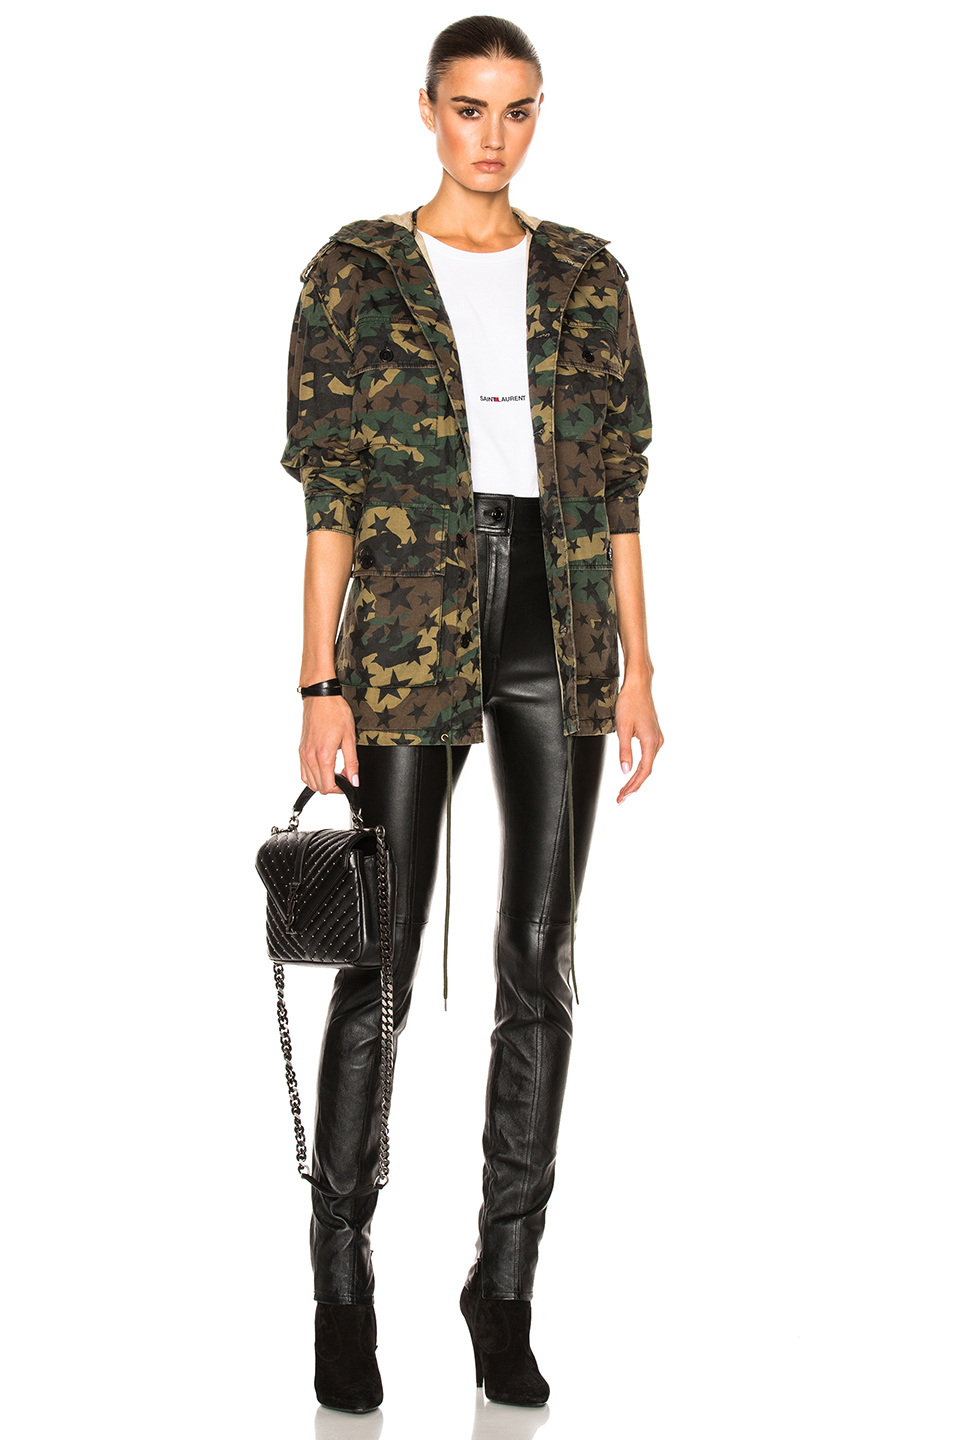 Saint Laurent Army Camouflage Jacket with Stars in Abstract,Brown,Green,Neutrals